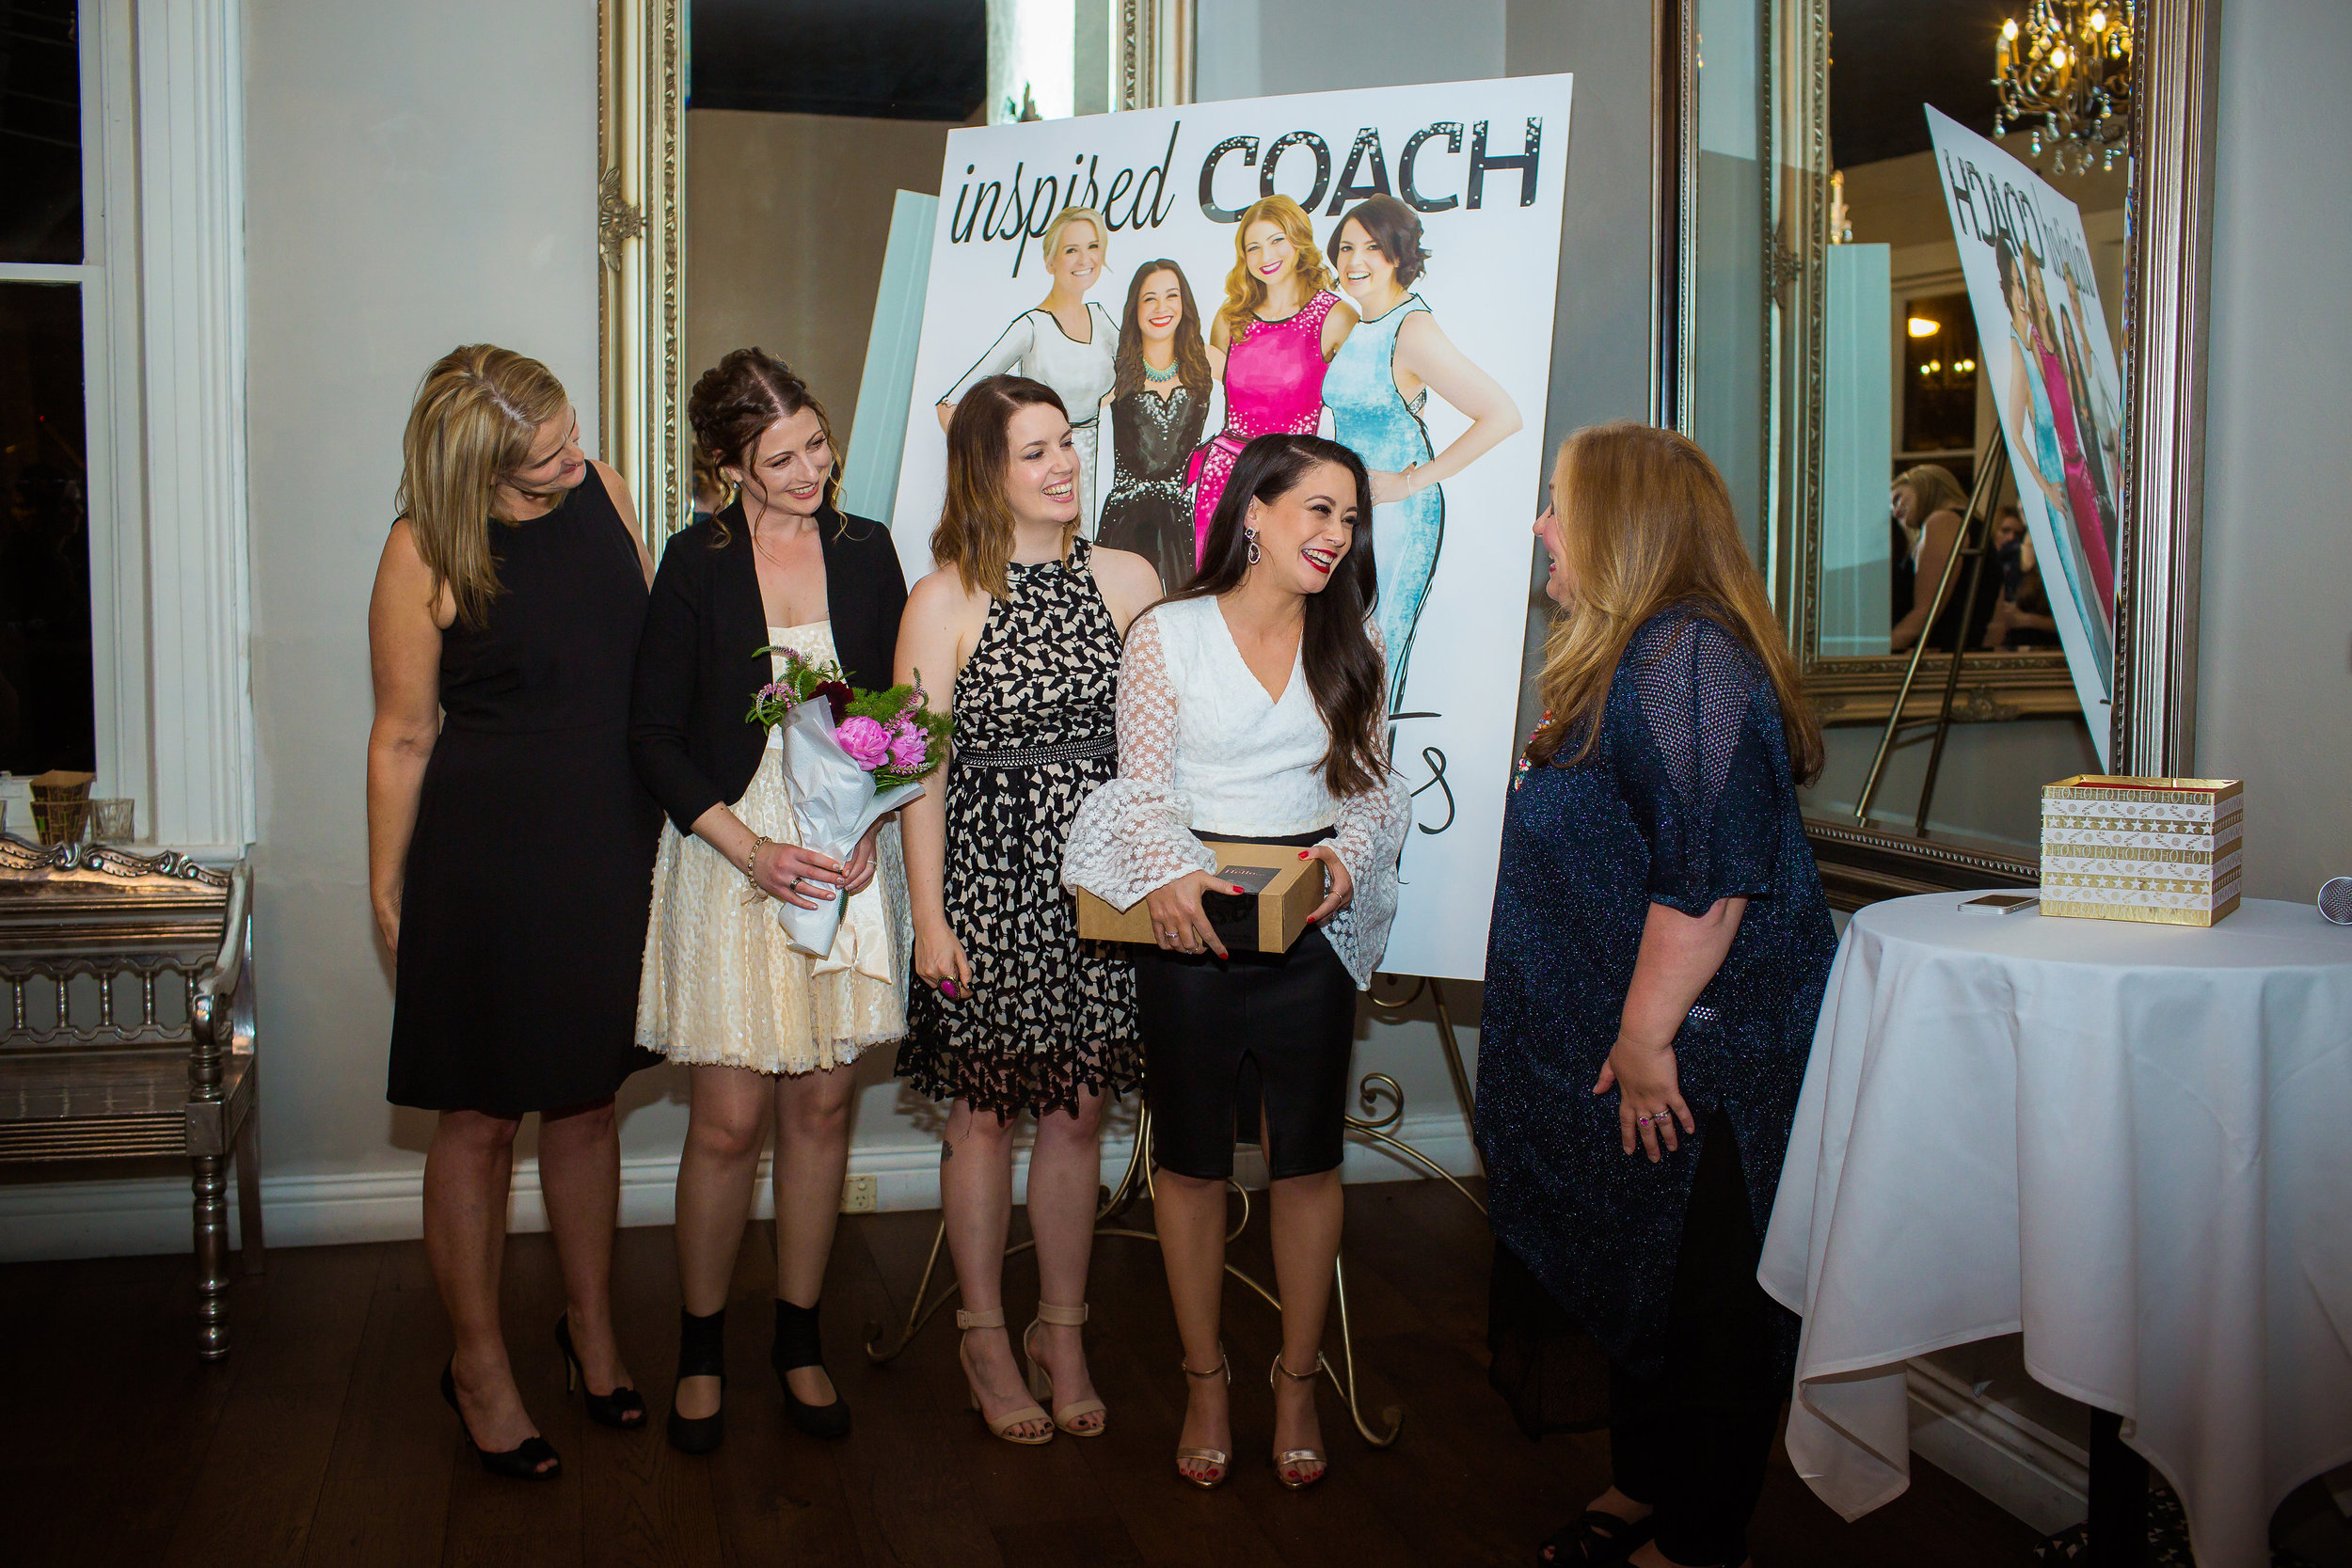 Inspired COACH Launch - I have SO many incredible memories over the years, rich with moments of joy and happiness.This is just one of them, the 2016 BYCA Christmas Party and Inspired COACH magazine launch.We were so excited to be on the cover!